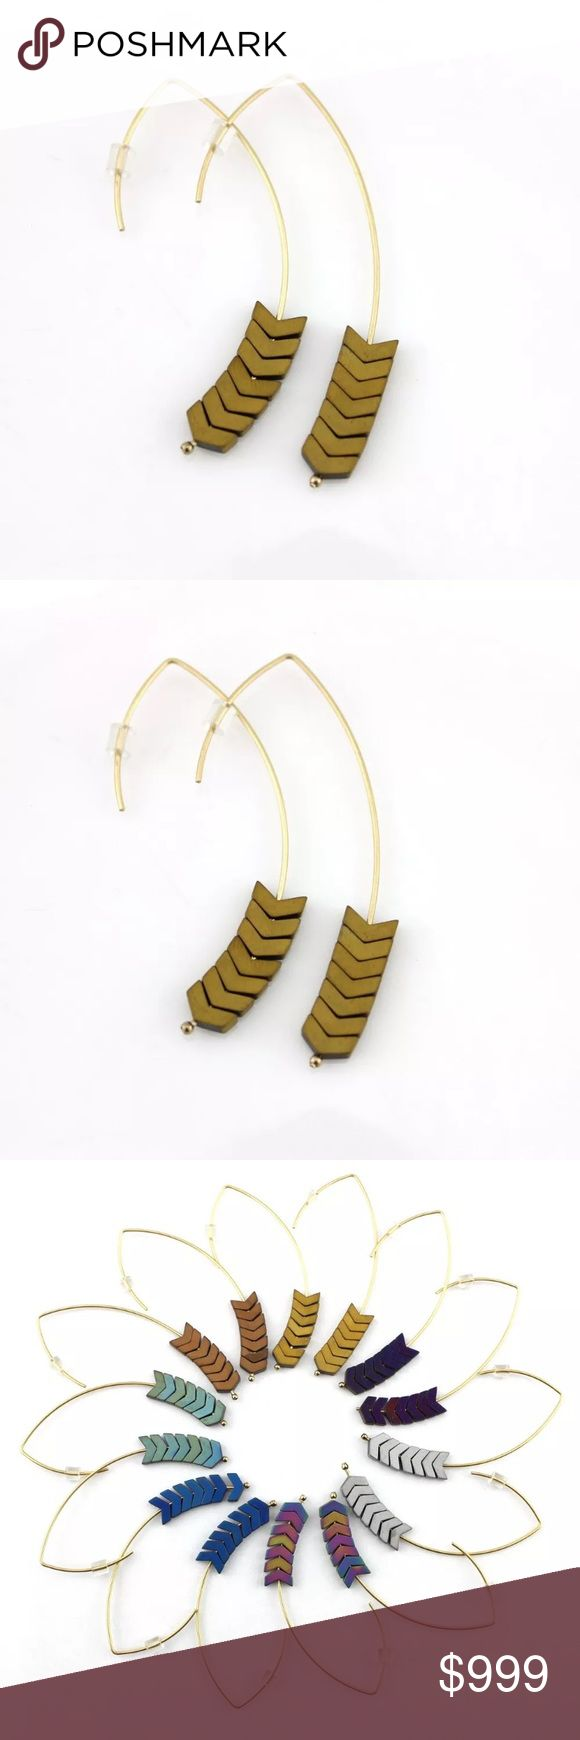 COMING SOON 🎈Chevron Earrings Natural Stone Arrow Women Chevron Drop Earrings Natural Stone Arrow V-Shaped Hoop Earrings Gold Material: Alloy, Natural Stone Weight: about 2.6g  Purchased from manufacturer for resale. Manufacturer does not provide tags, but these are new and never worn. Jewelry Earrings